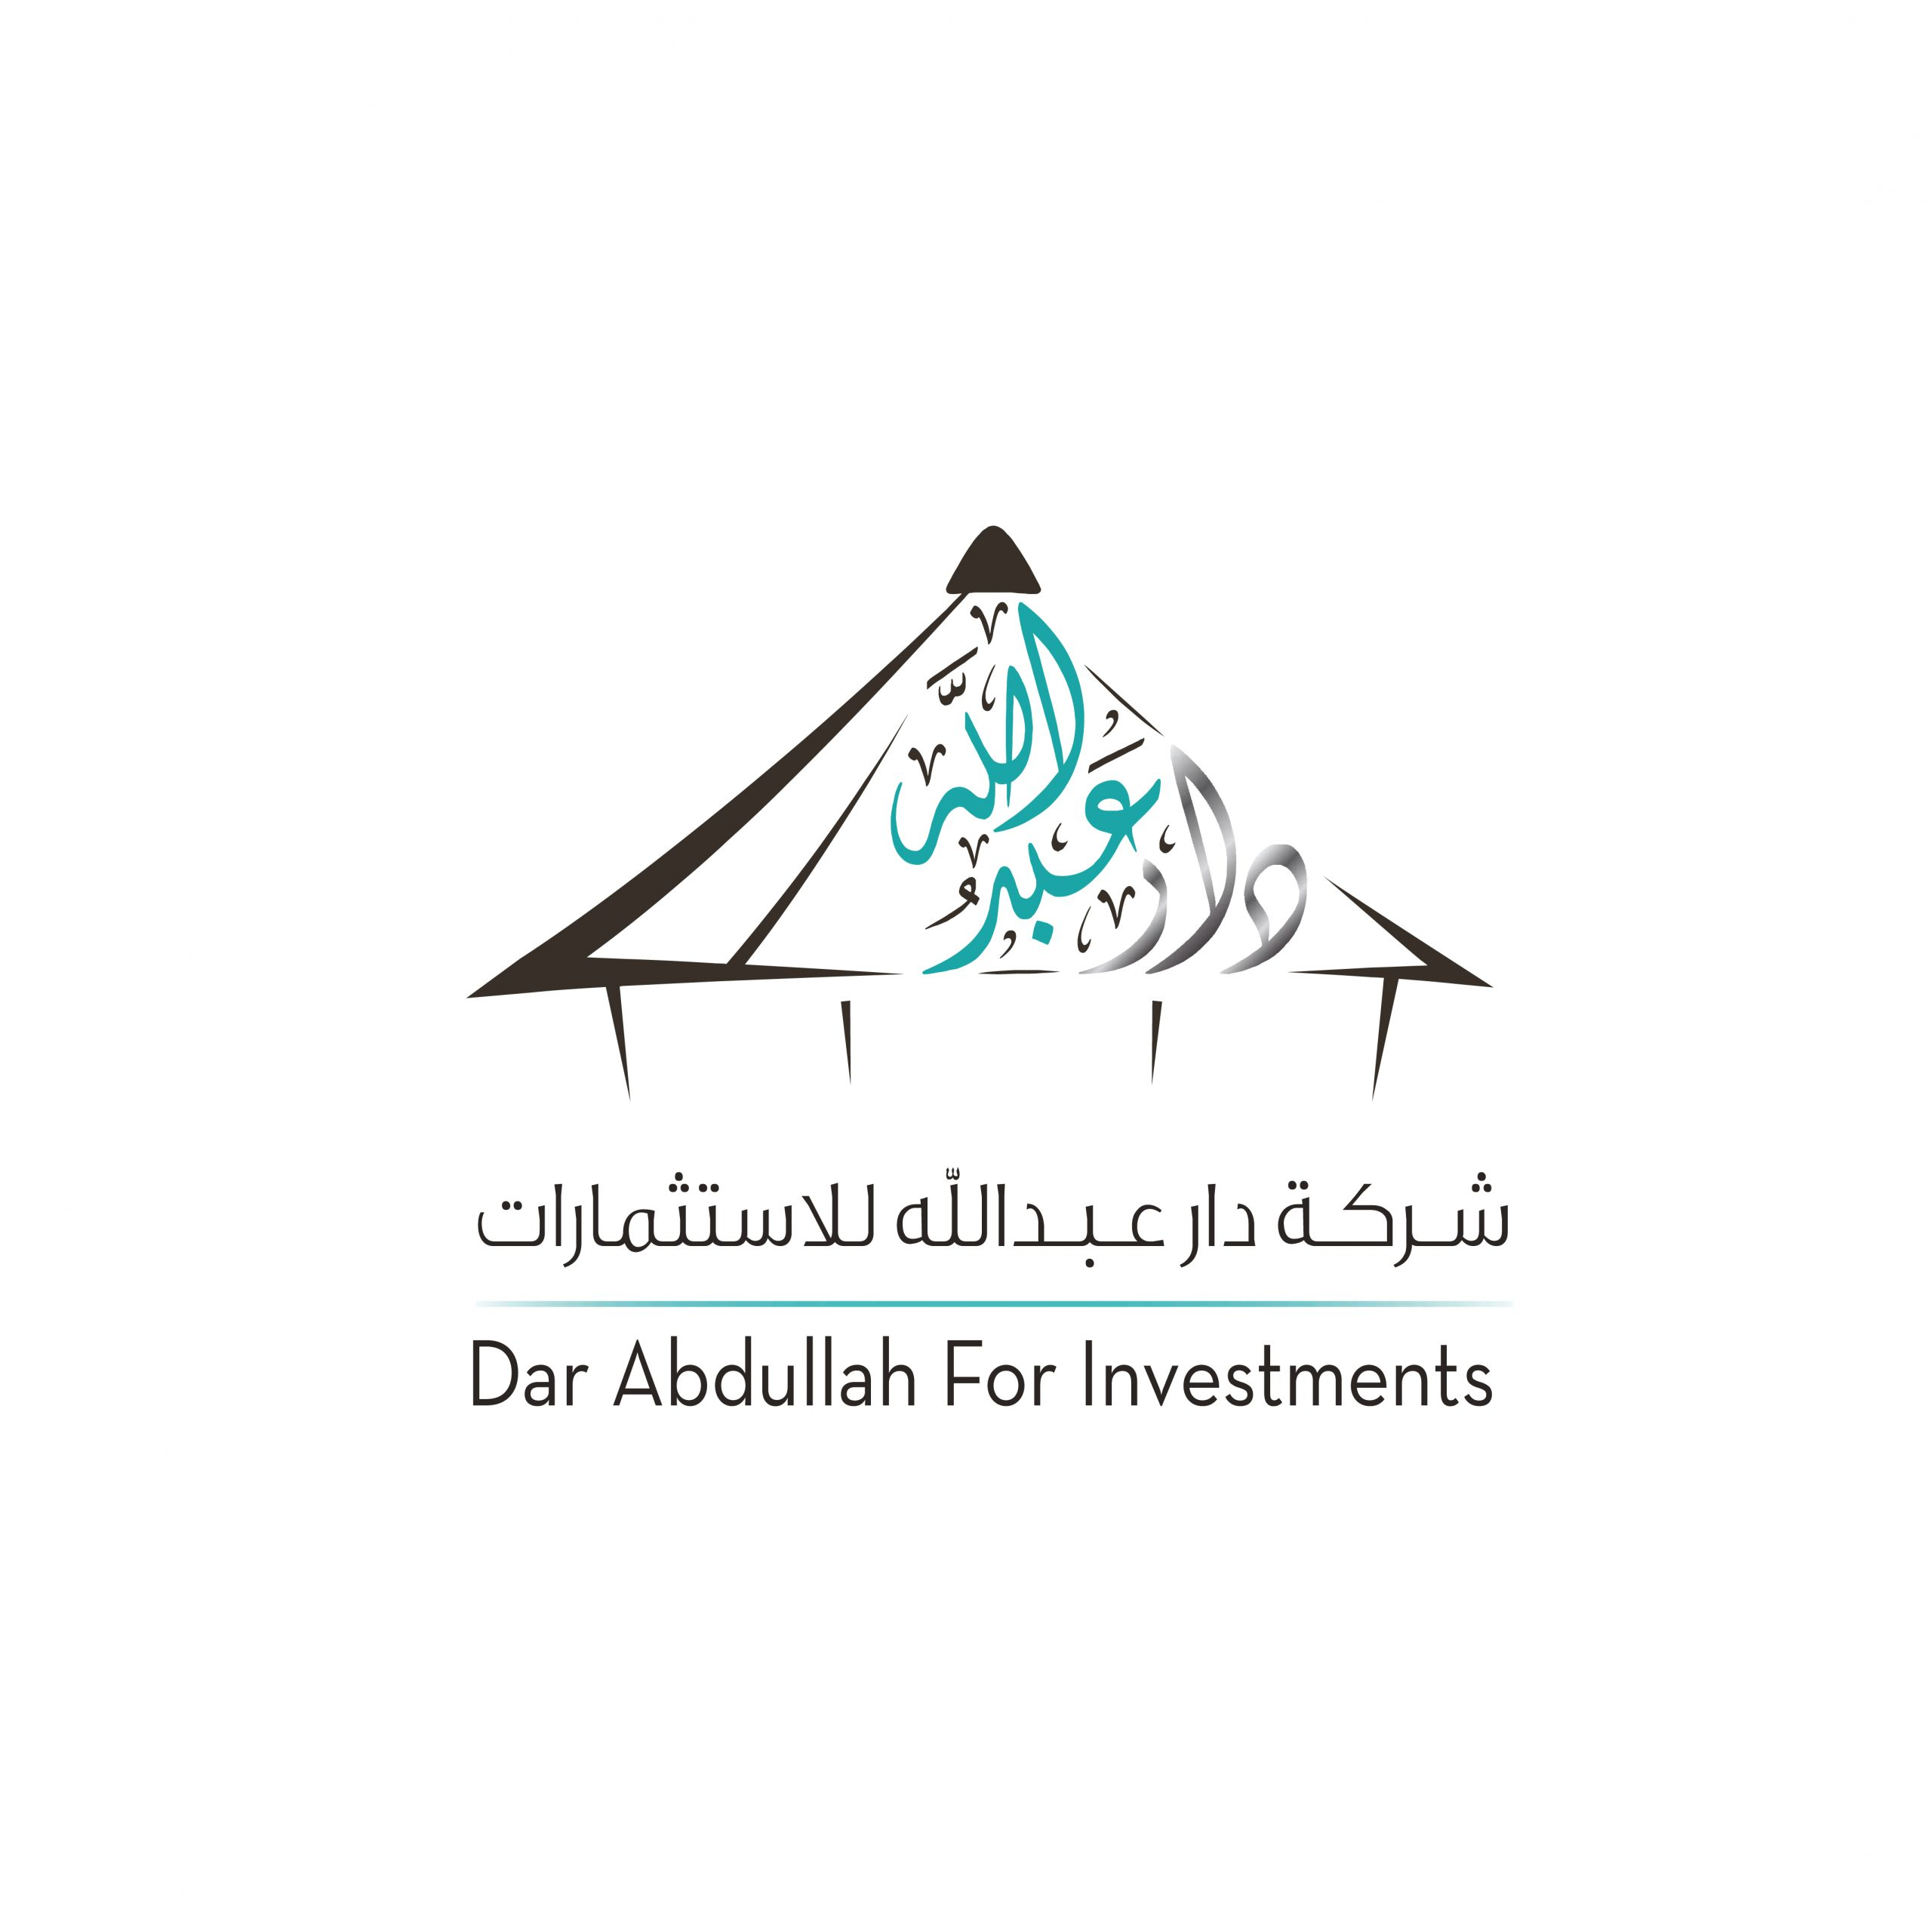 Dar Abdullah For Investment